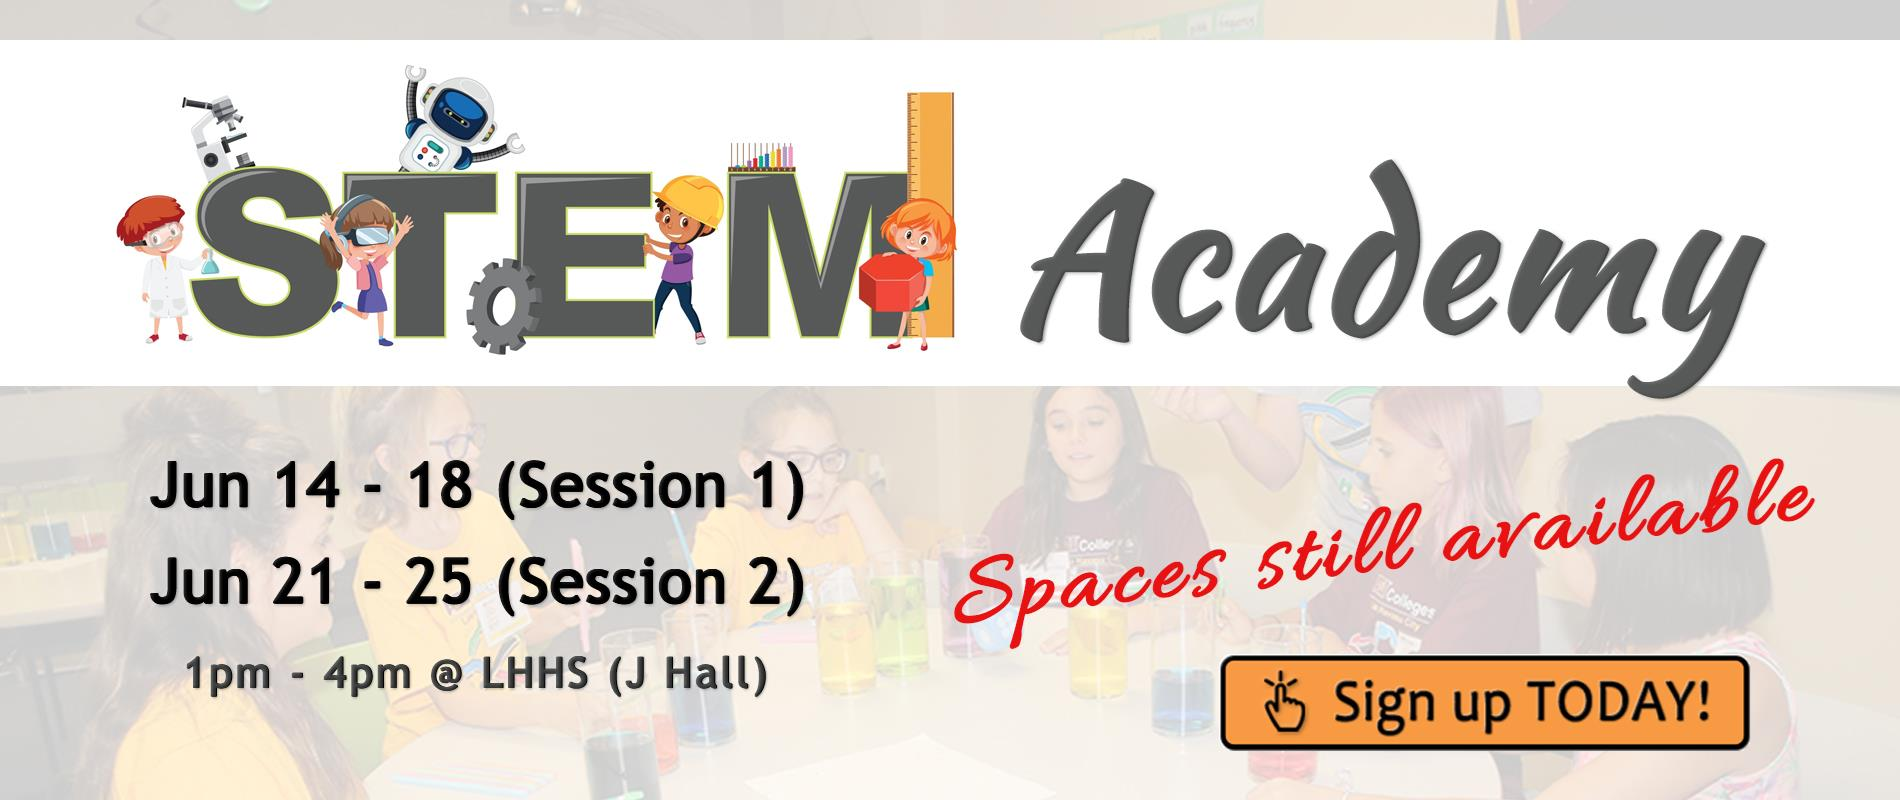 clipart of STEM students with link to academy registration